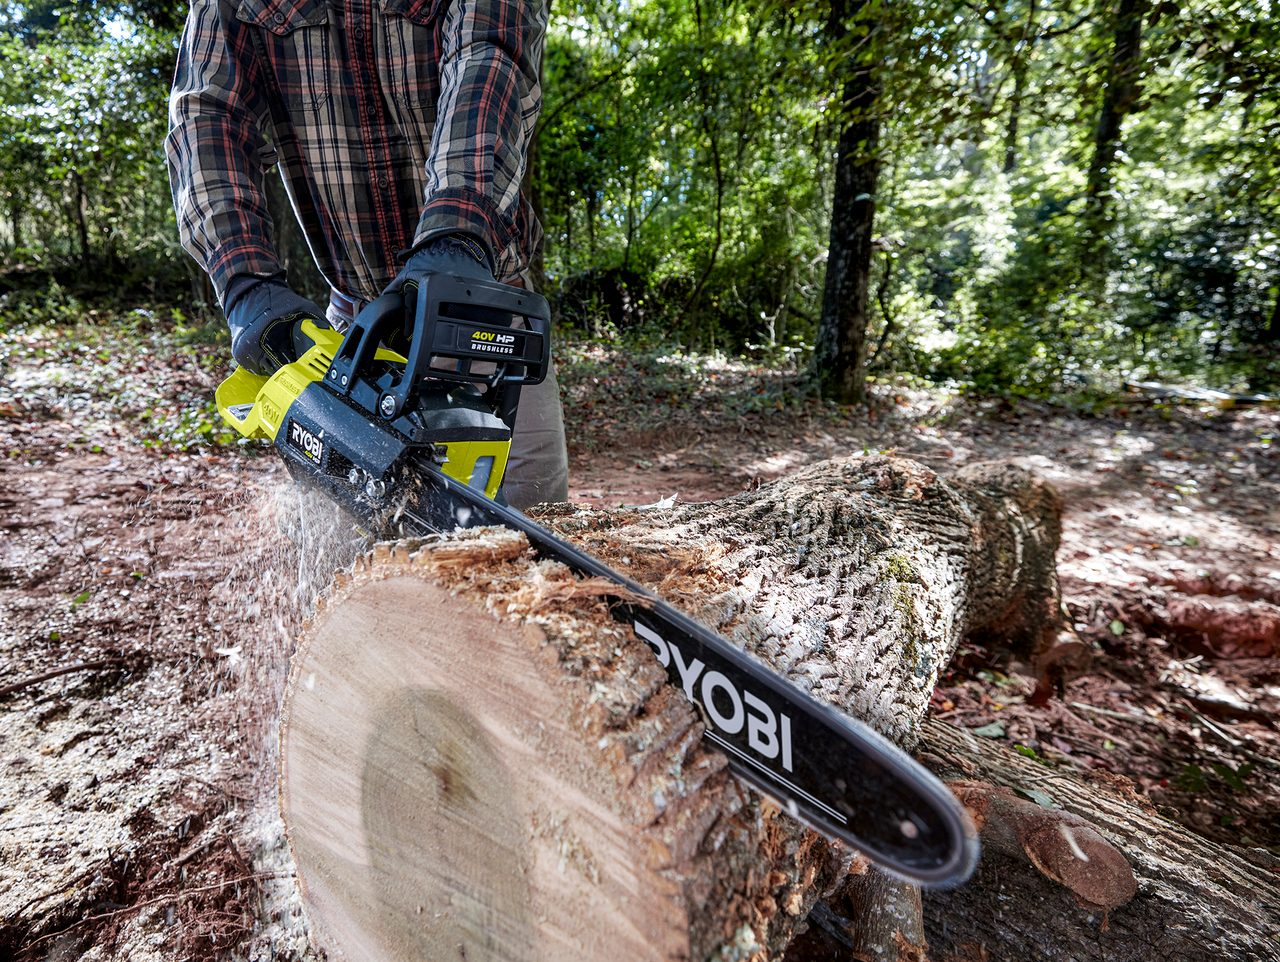 Automotive tire, Outdoor recreation, Plant, Saw, Tree, Wood, Wheel, Trunk, Grass